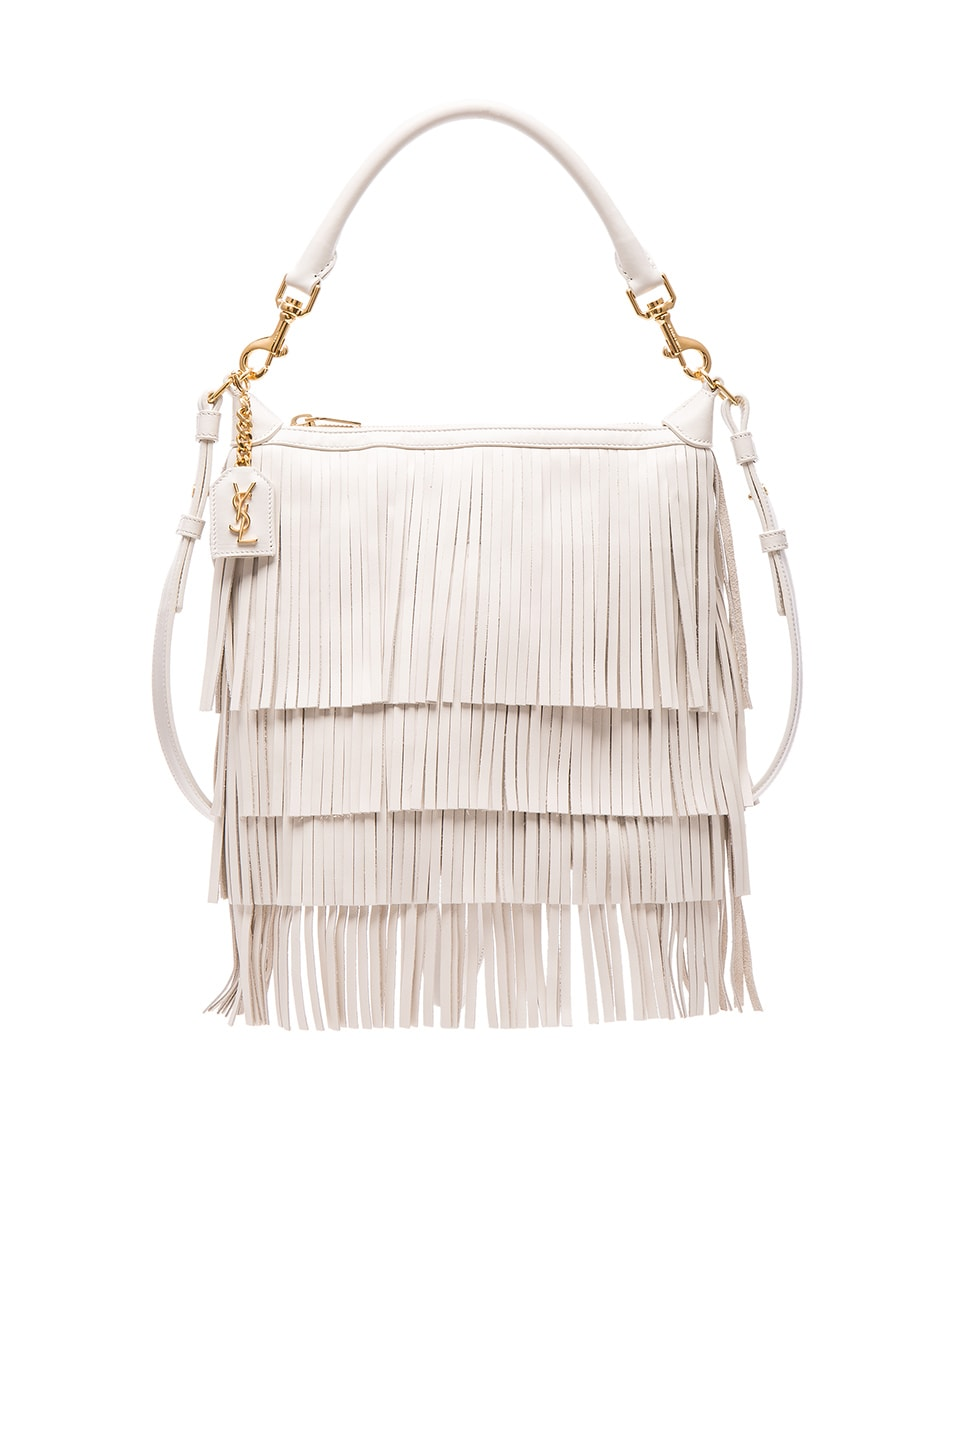 ysl designer bags - emmanuelle small leather fringe hobo bag, white